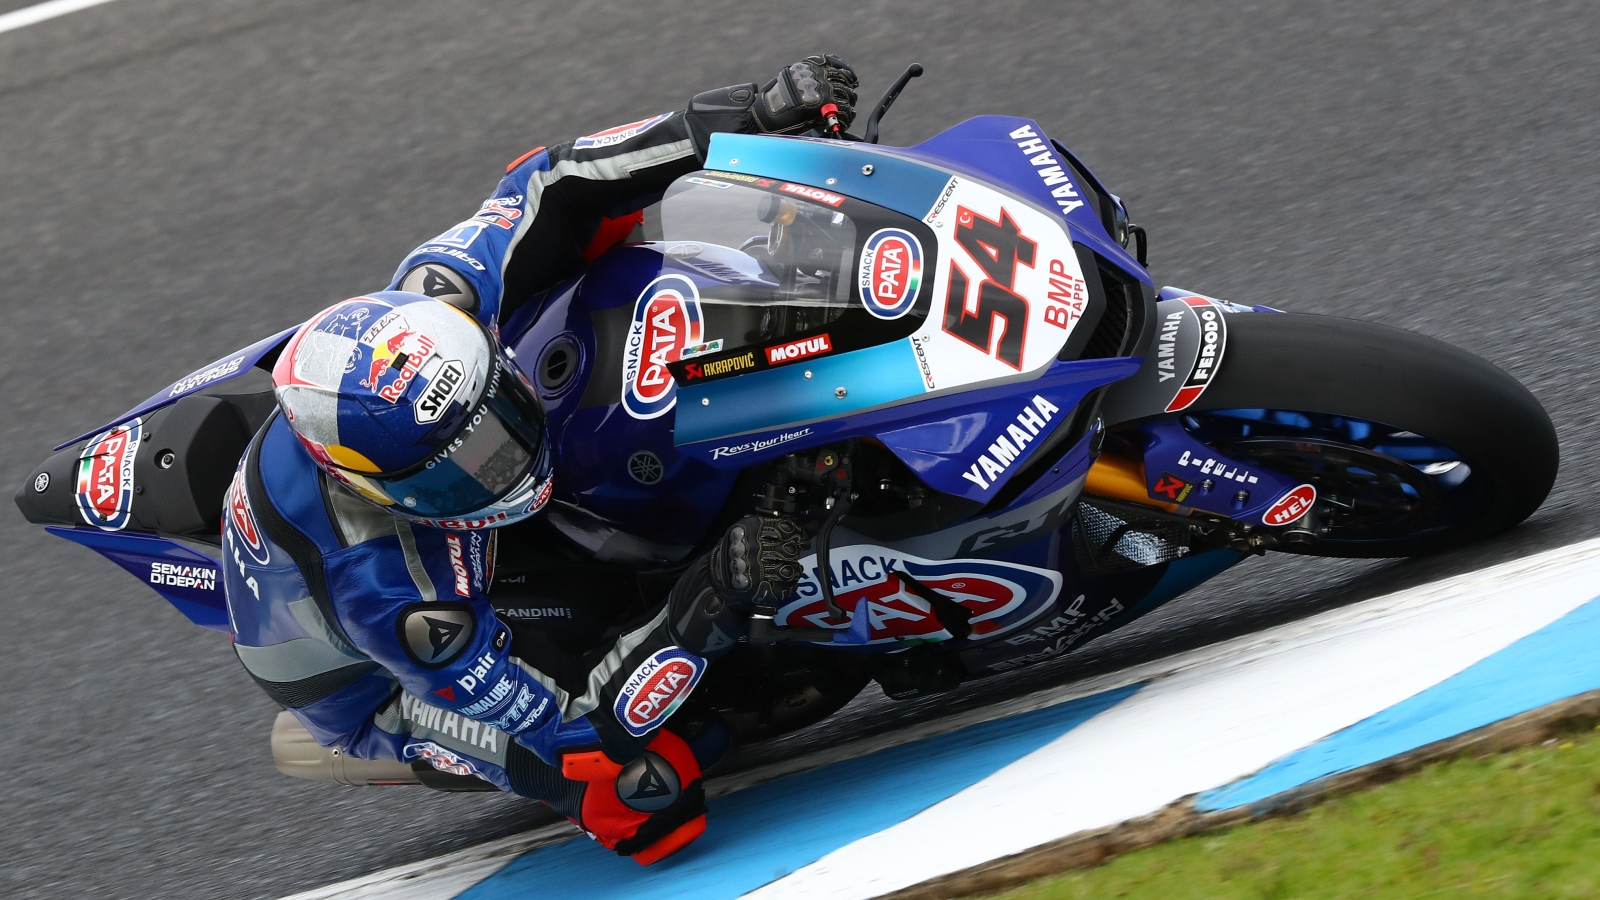 Toprak Razgatlioglu gana a Alex Lowes y Scott Redding una carrera memorable en Australia